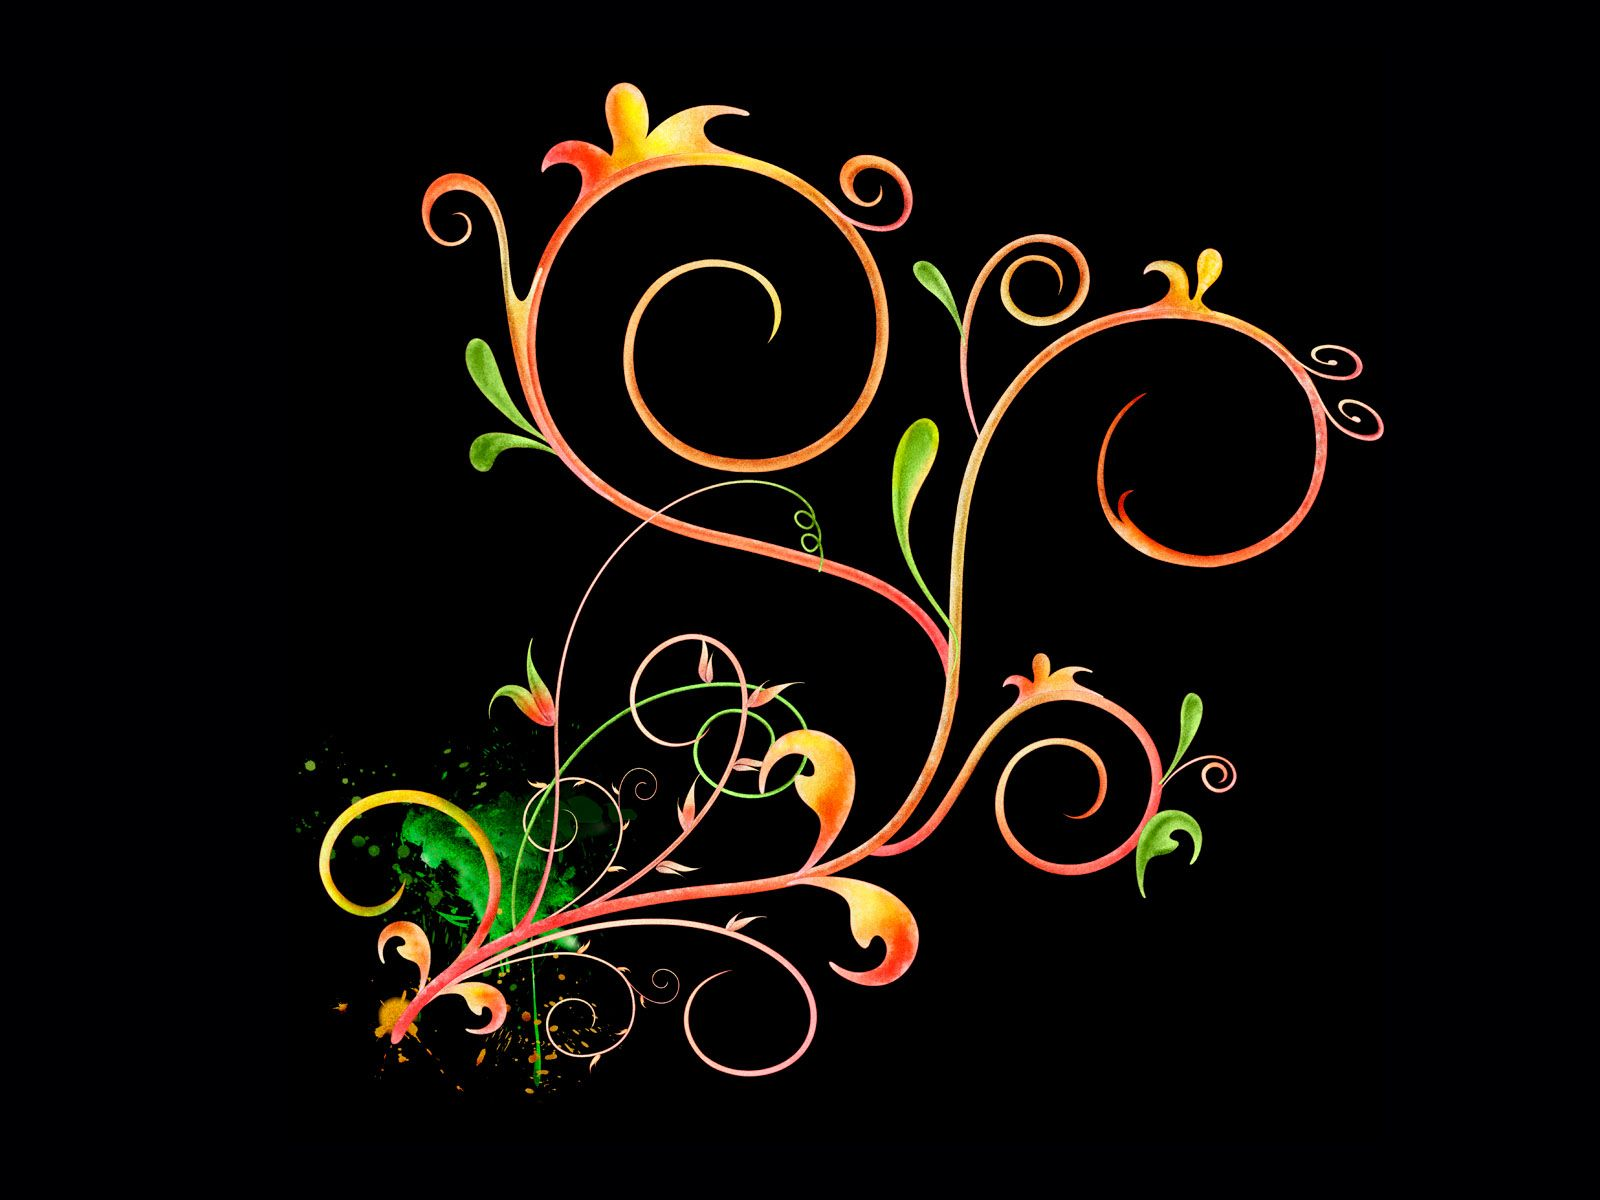 Cool Designs cool patterns and designs | cool pattern designs (3/3) | quilling